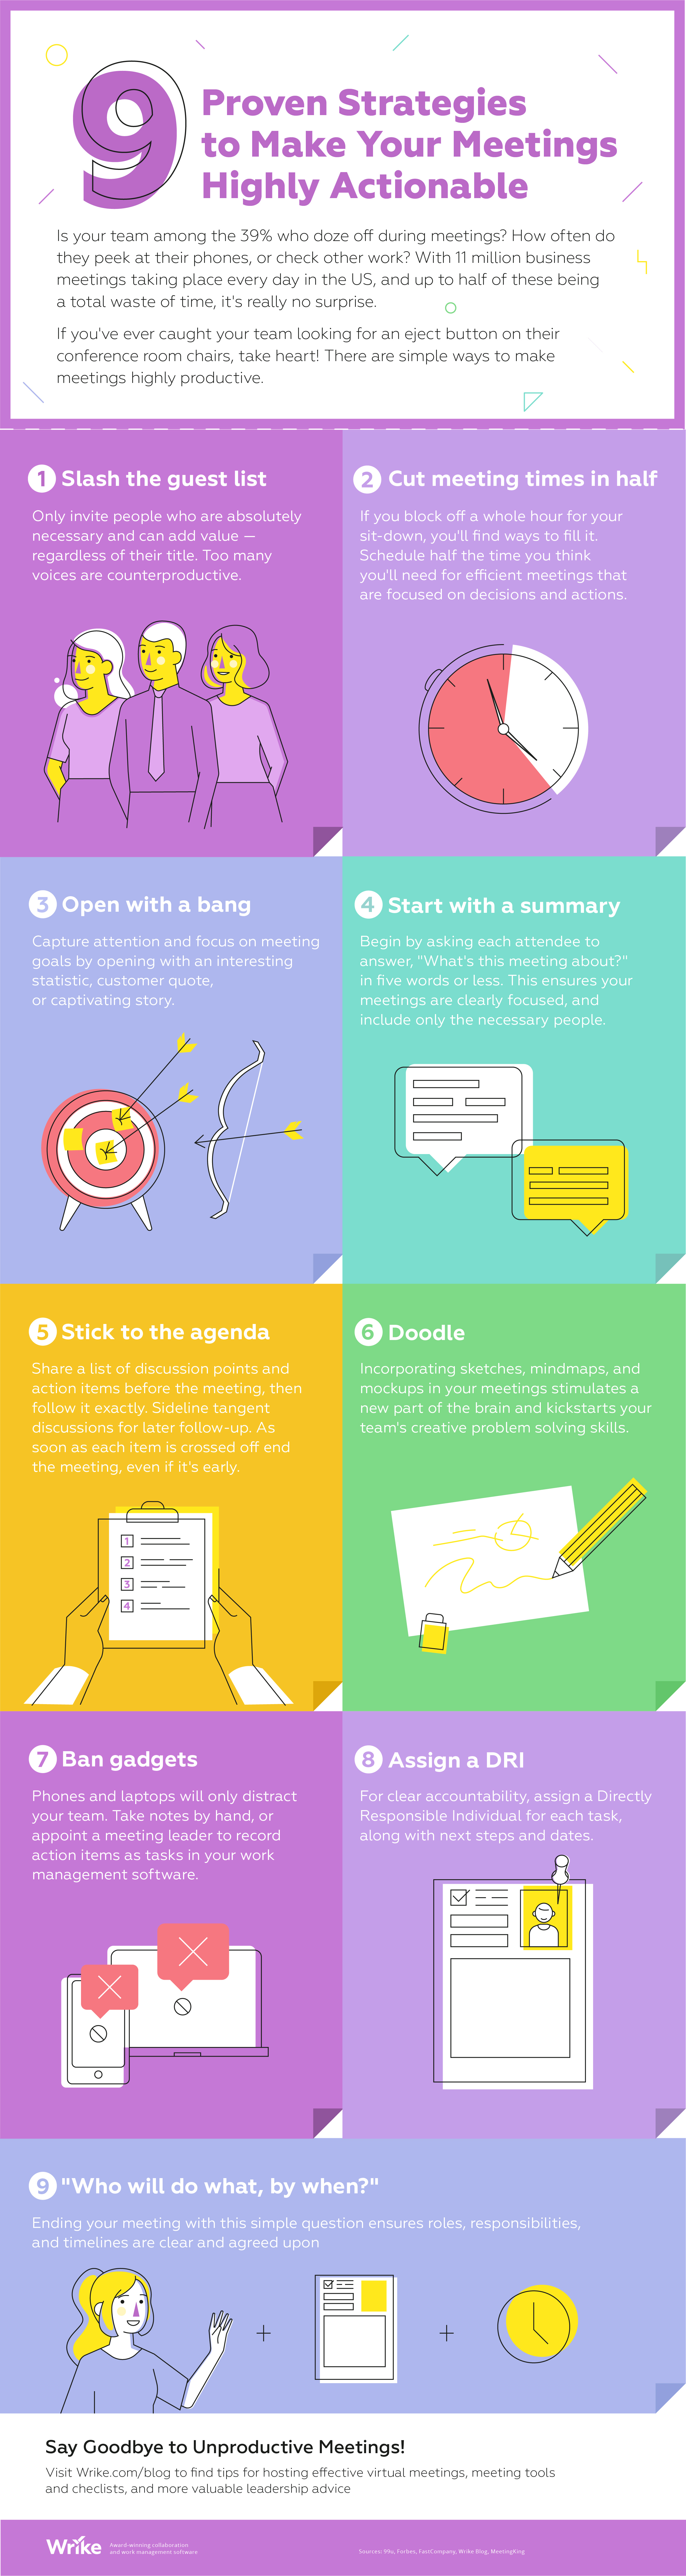 9 Proven Strategies to Make Your Meetings Highly Actionable (Infographic)